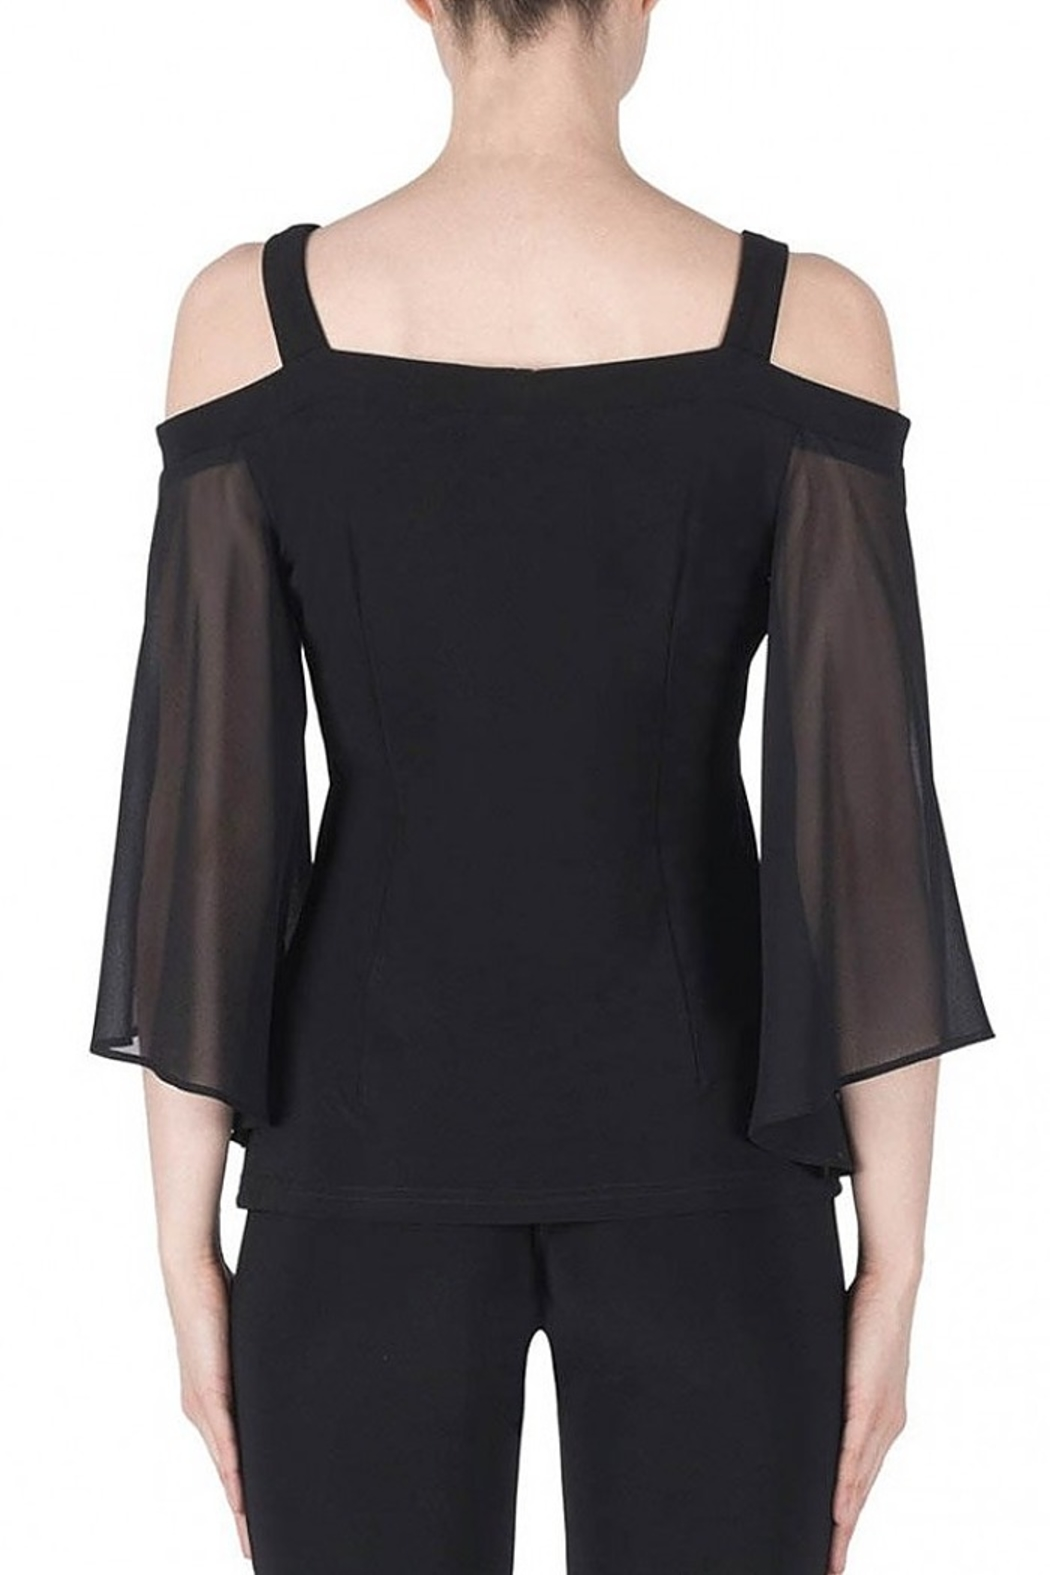 Joseph Ribkoff fitted black top with pearl accented flowers - Front Full Image